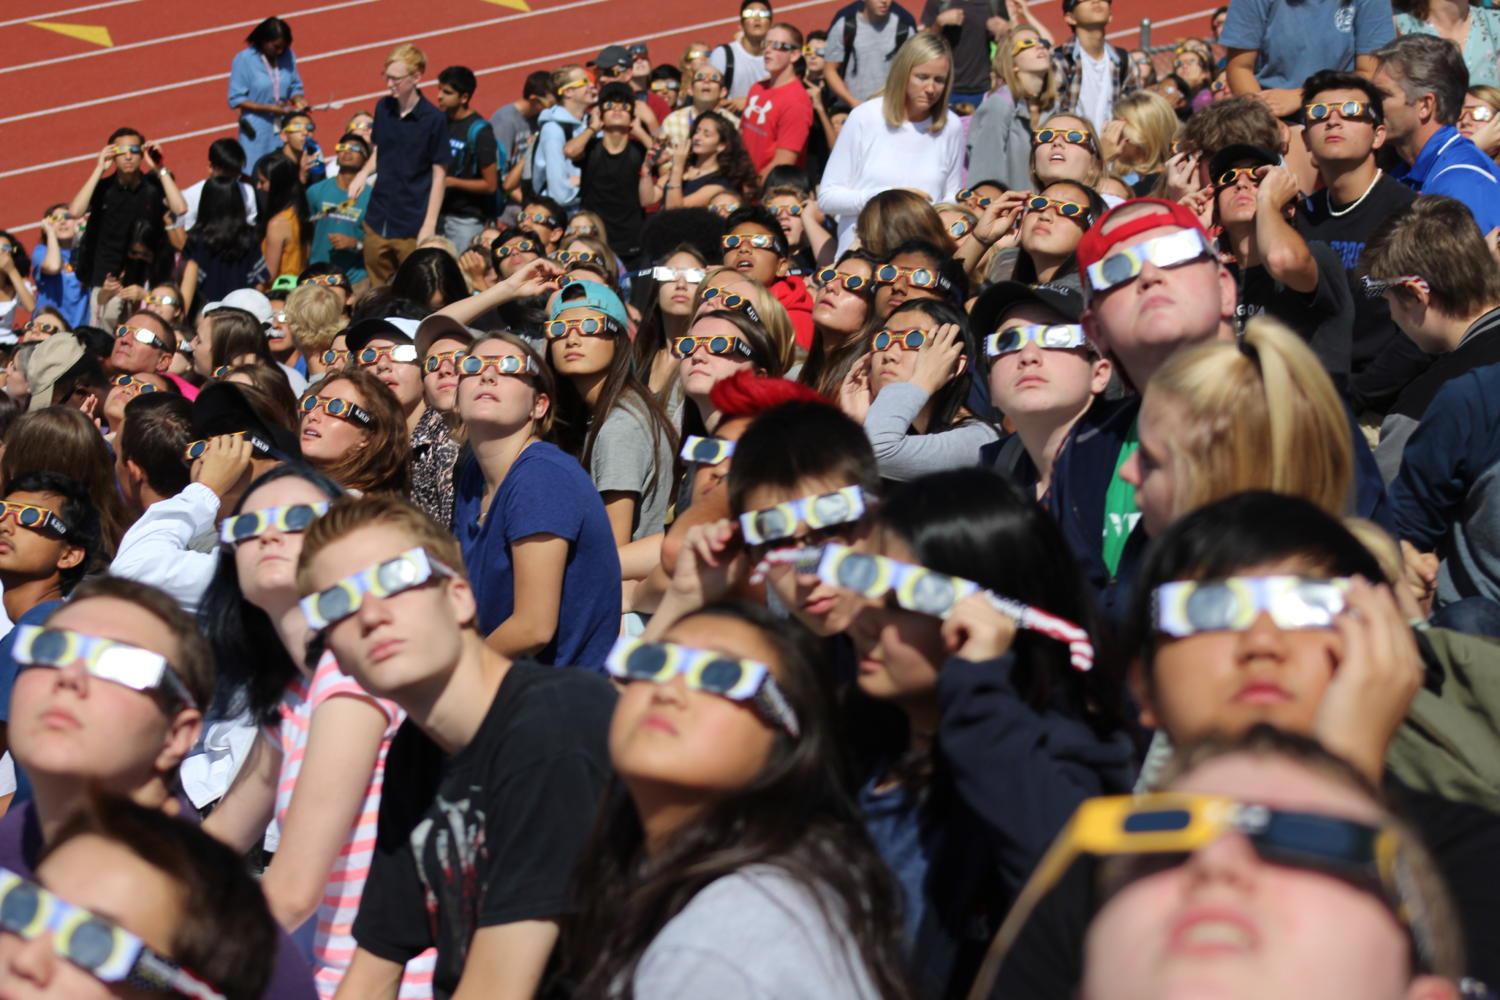 Students+viewed+the+solar+eclipse+with+safety+glasses+in+the+Stutler+Bowl+on+Aug.+21.